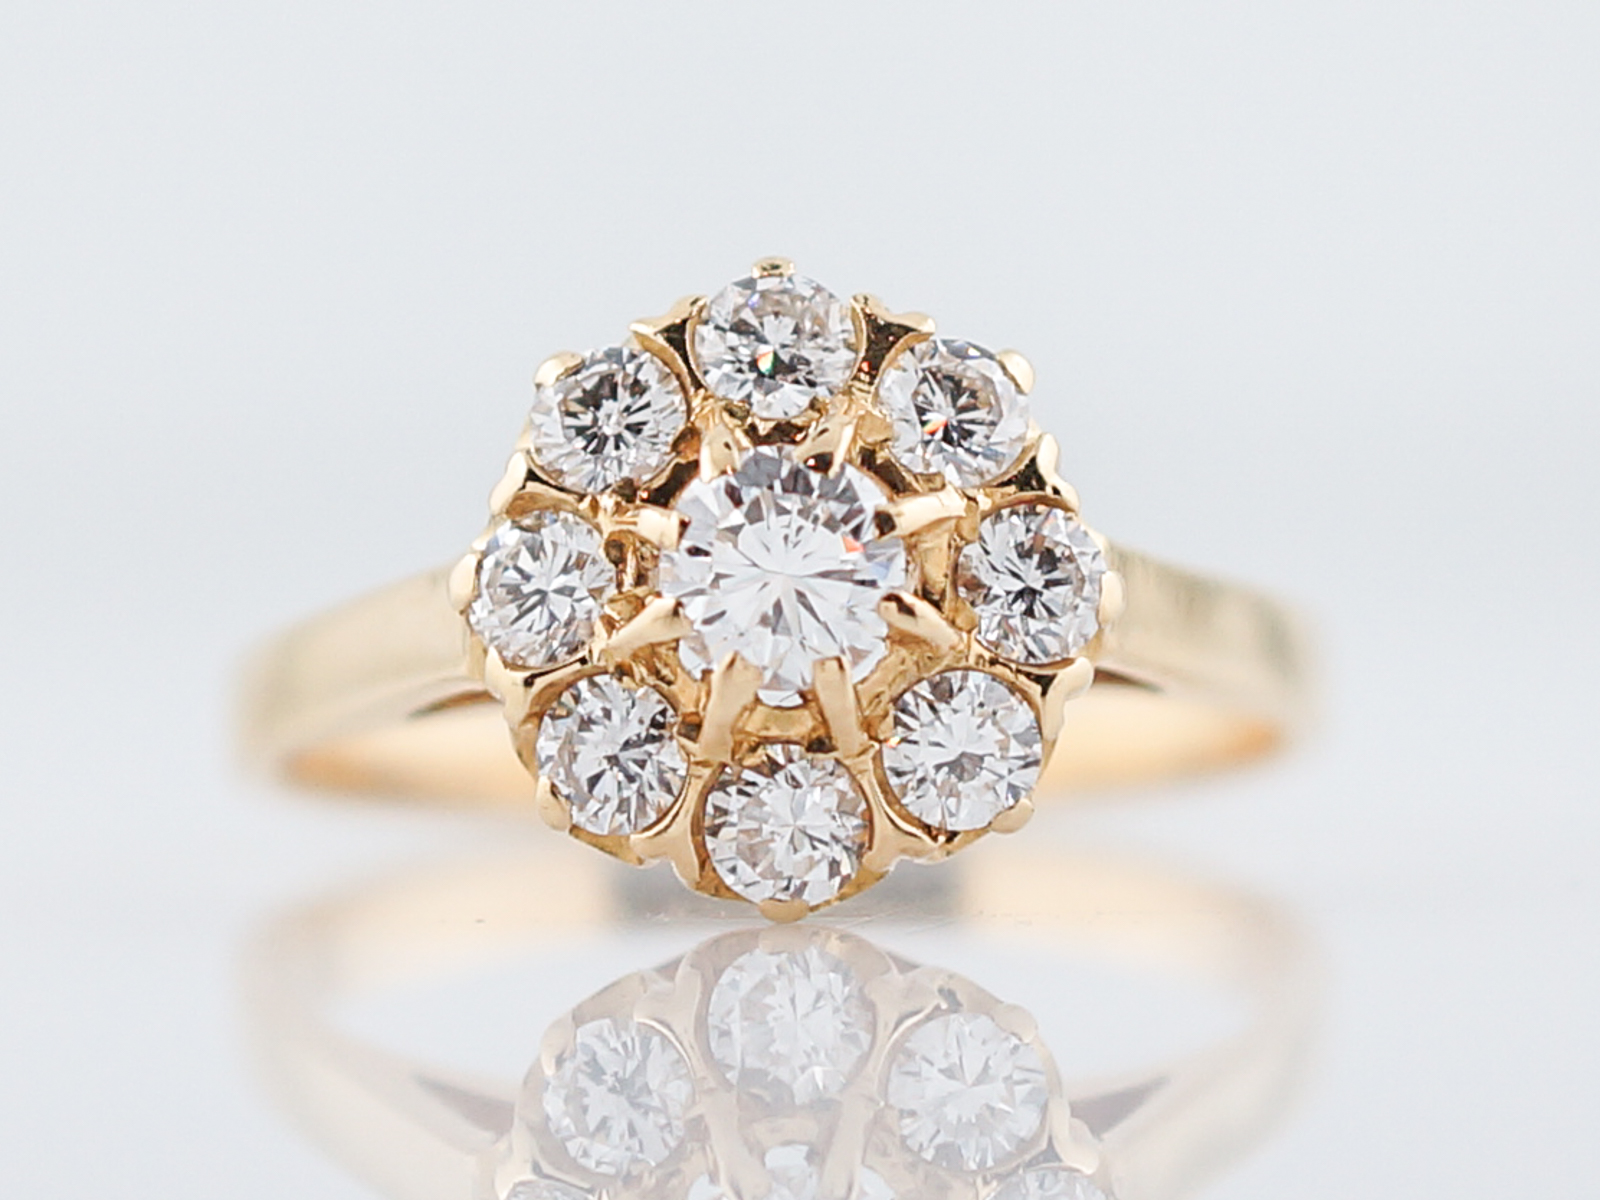 modern right product white gia jewellery in cut ring round img diamond brilliant rings gold hand